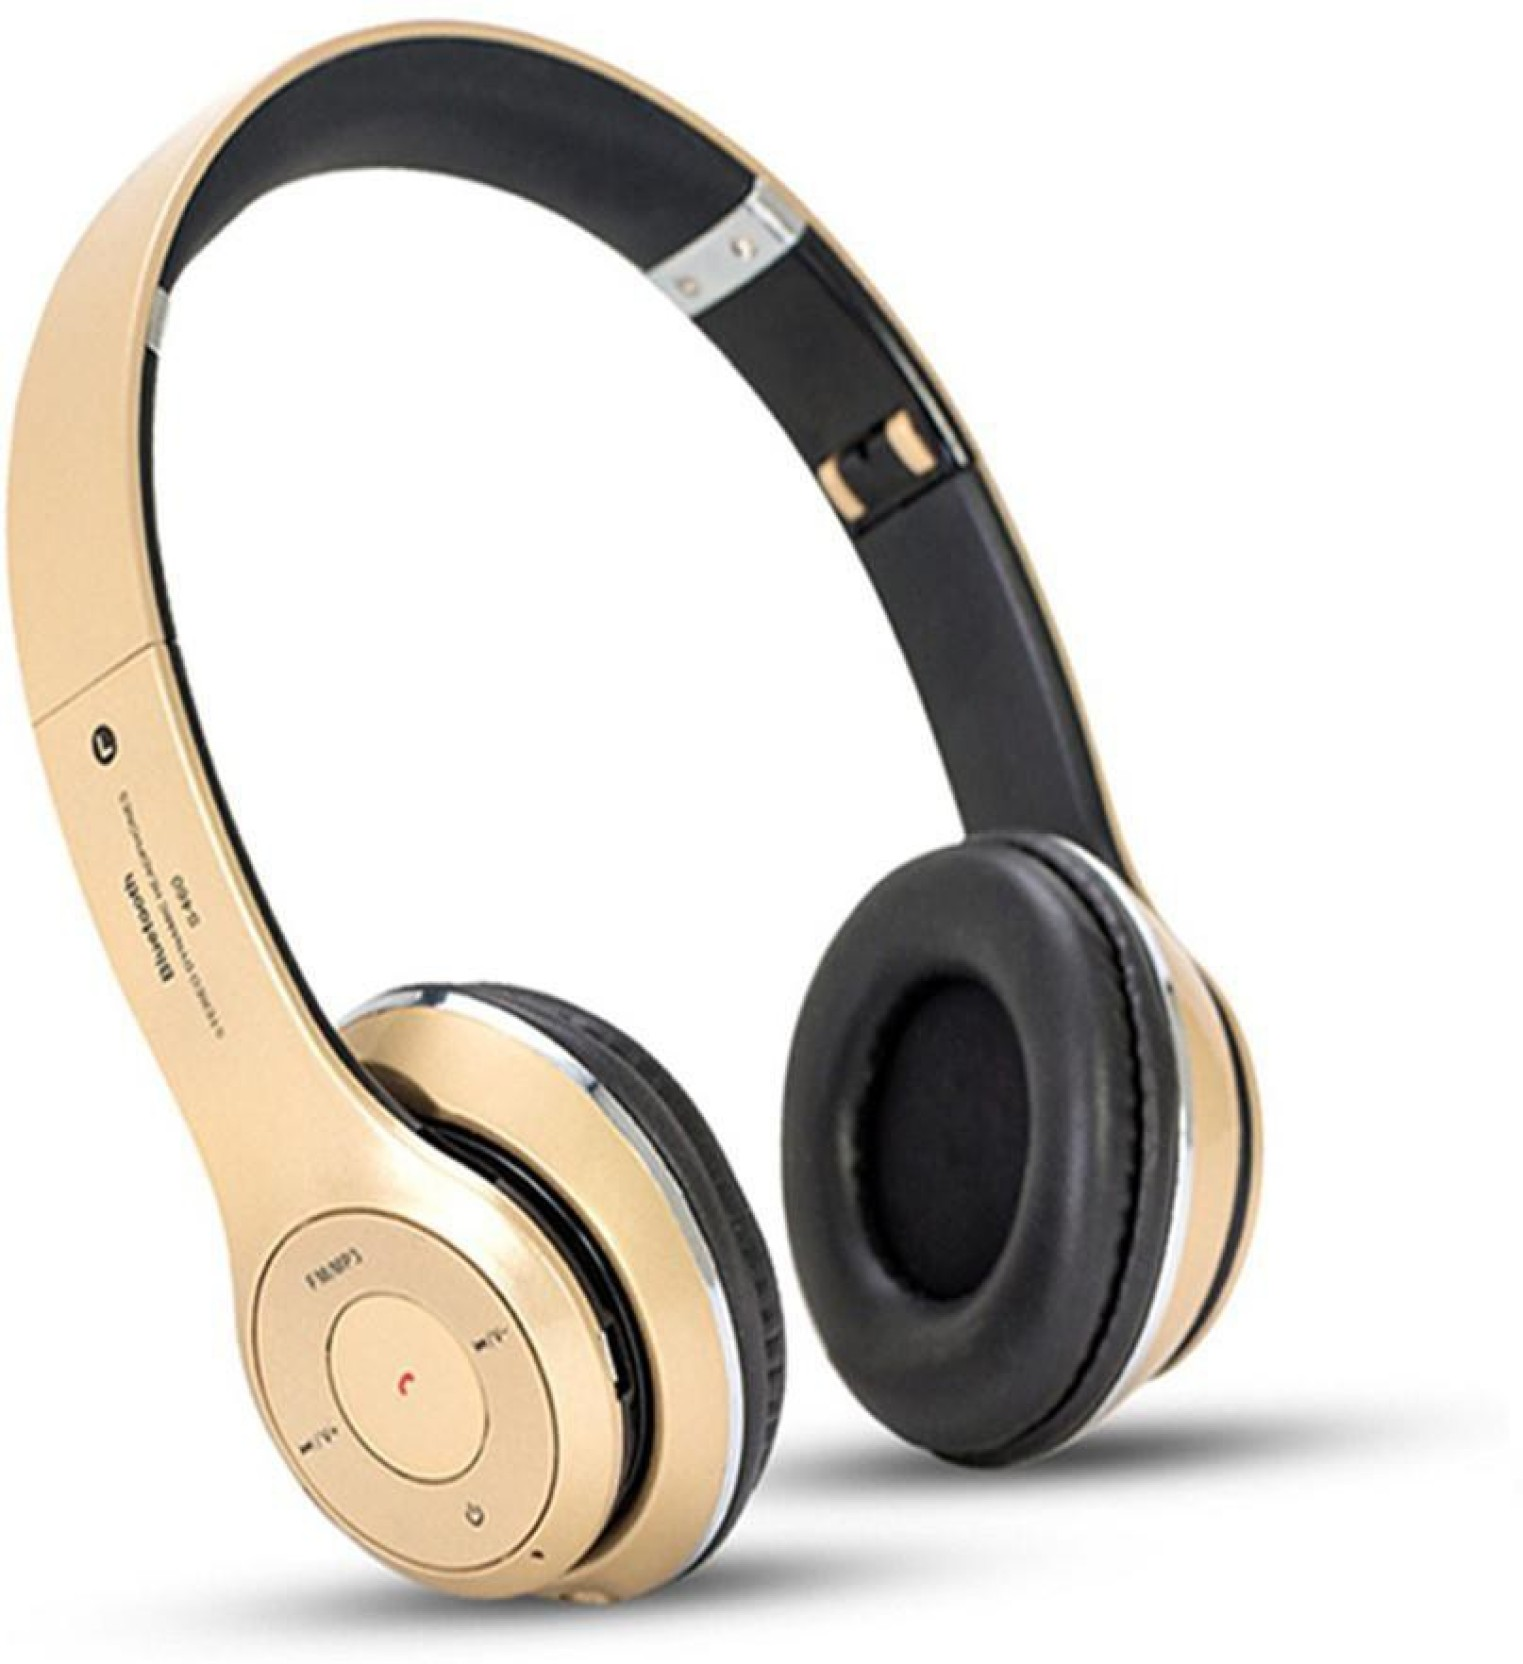 Callie Compatible Beats Solo Hd S460 Wireless Bluetooth Stereo Headset With Mic Home